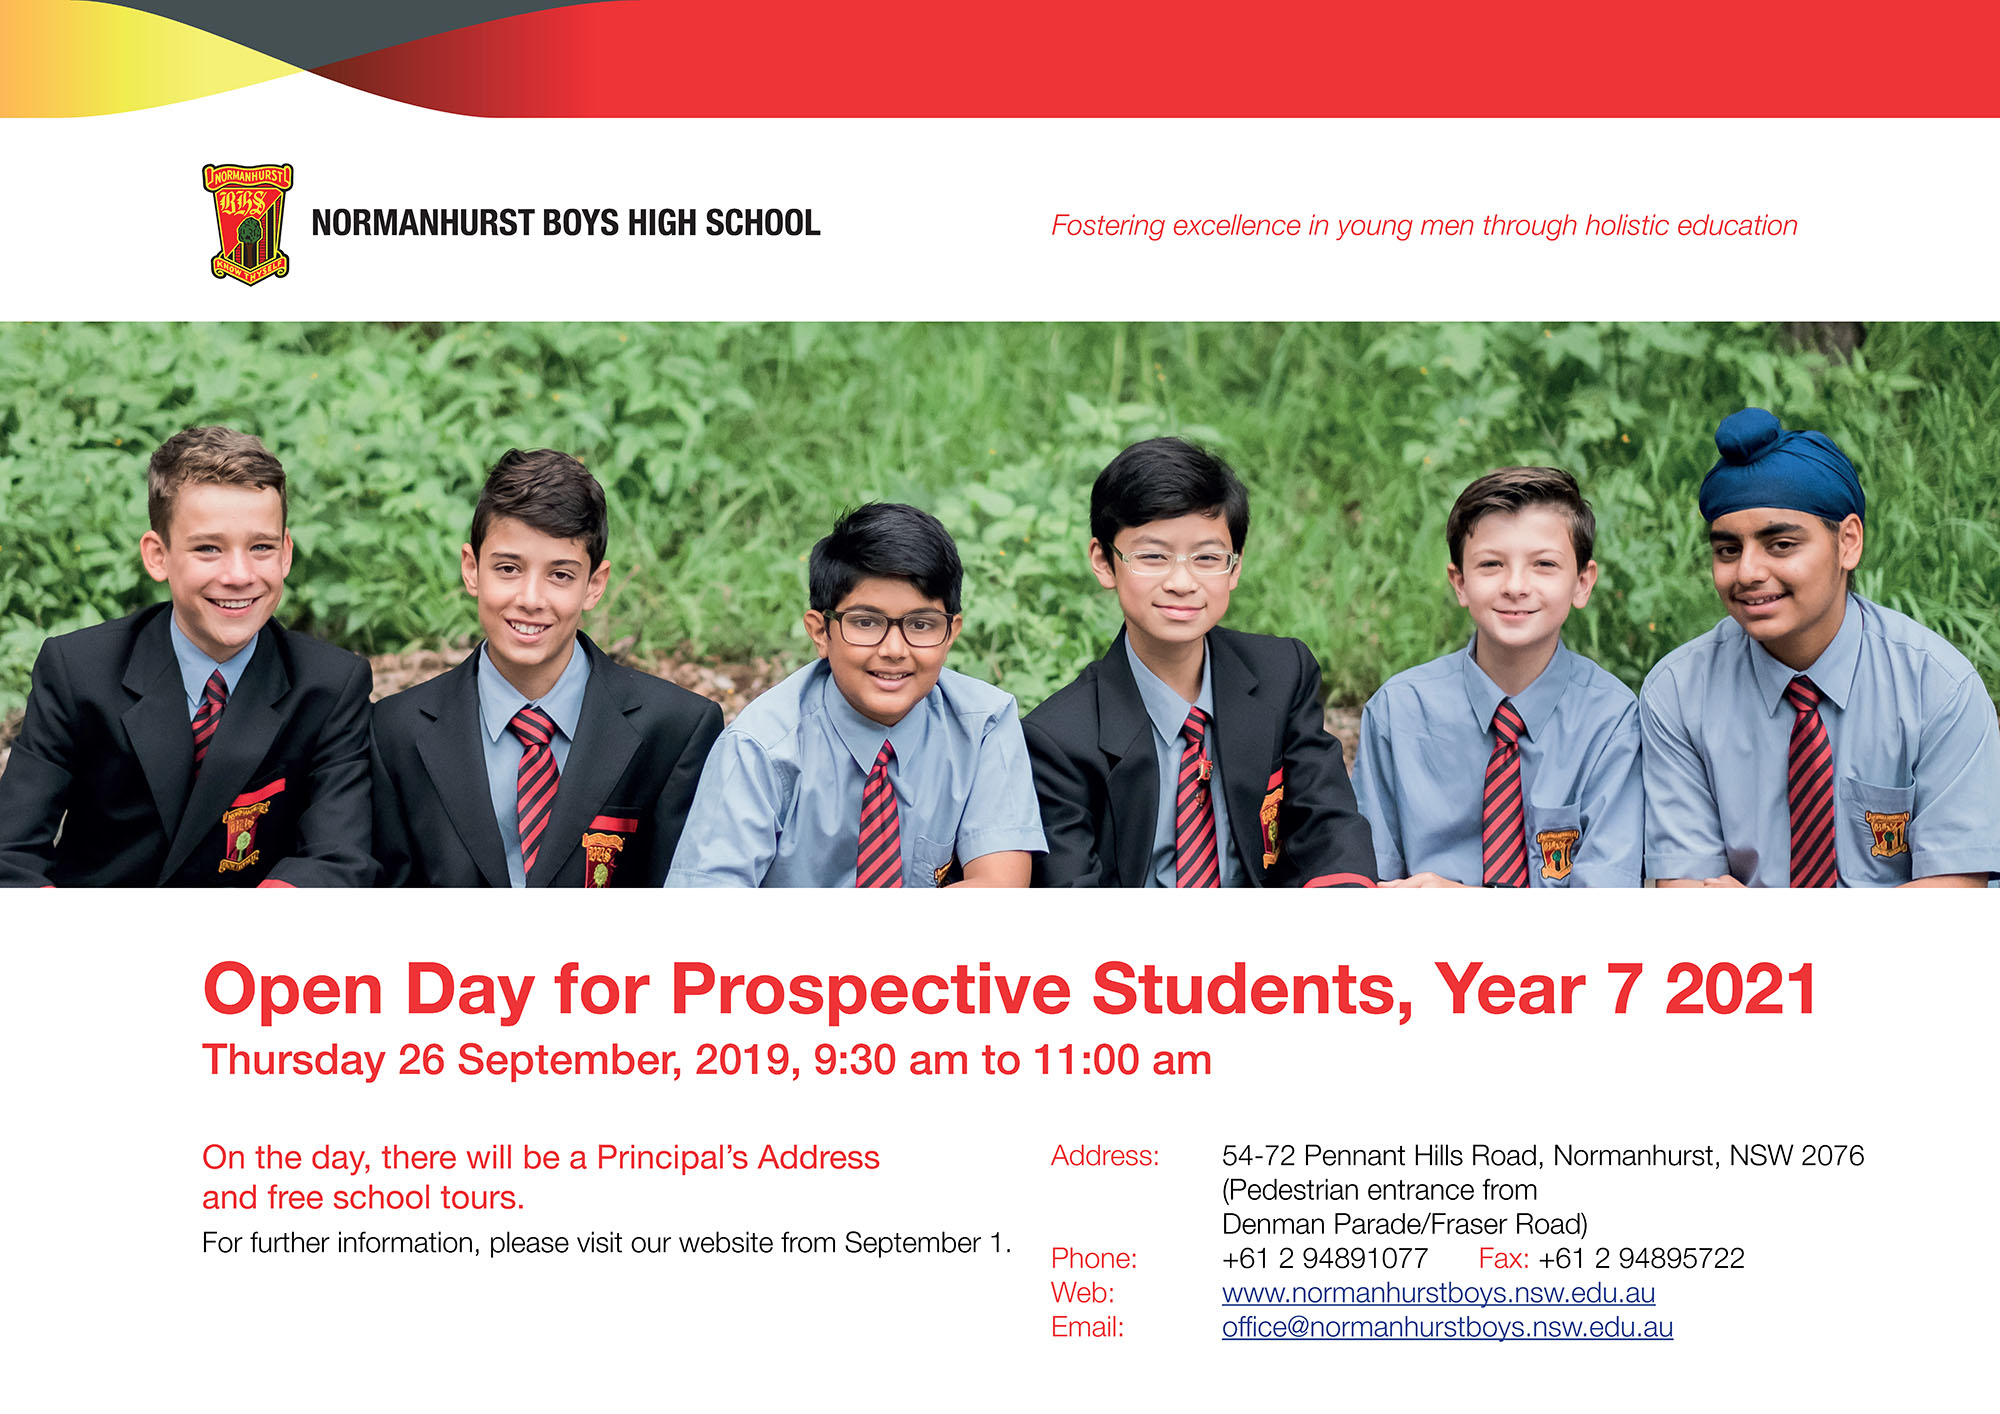 2019 Open Day advertisement